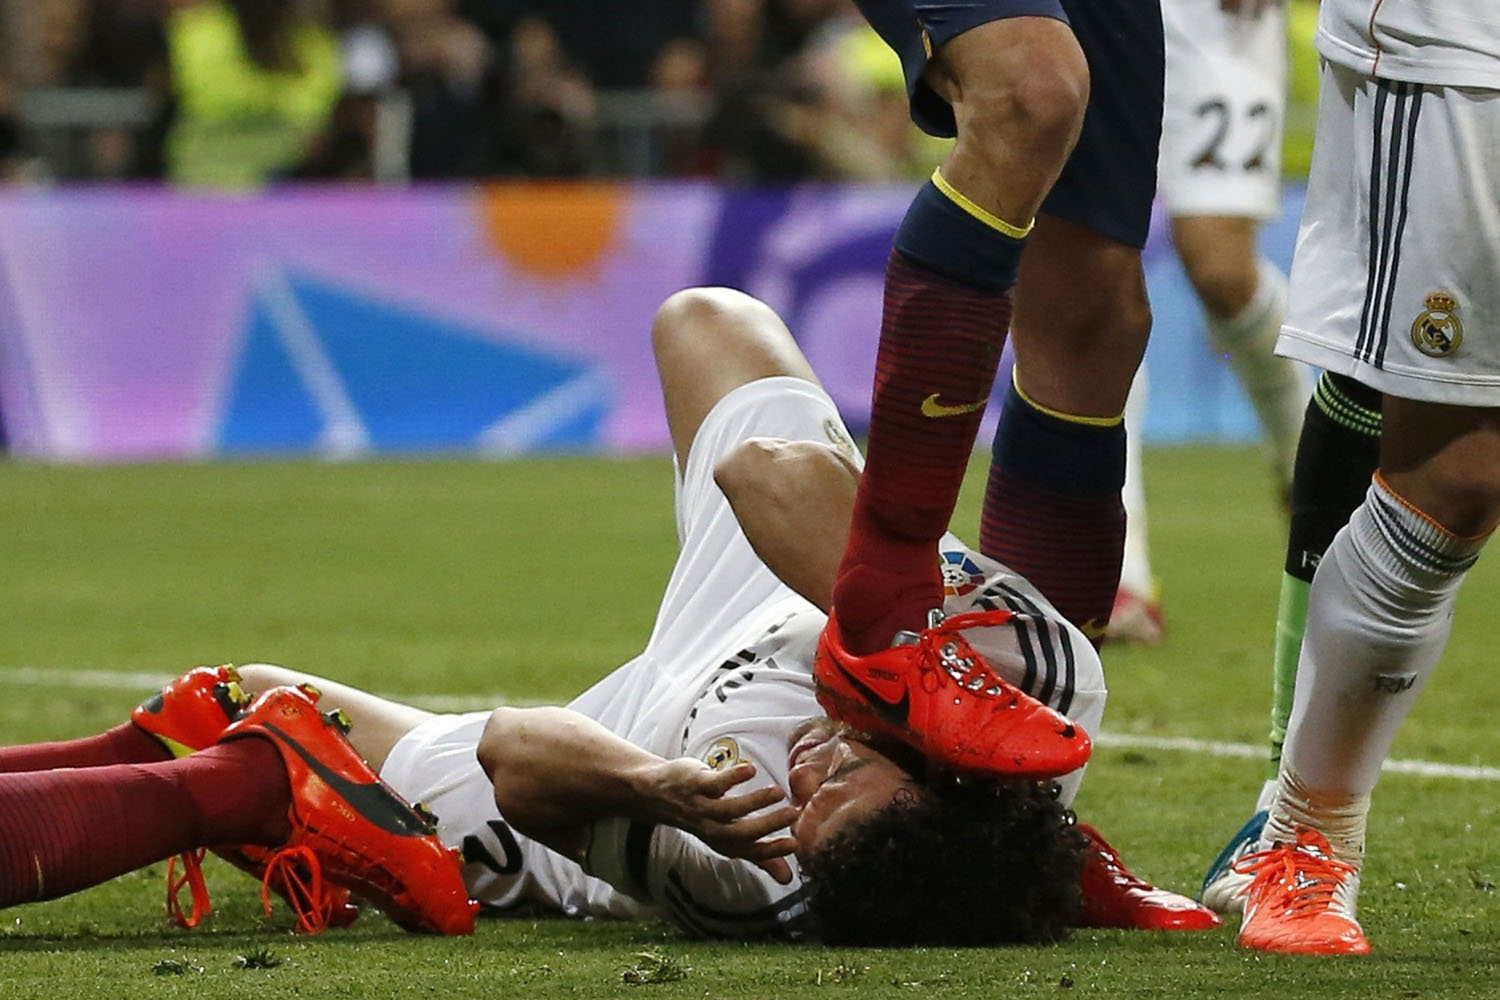 Mar. 23, 2014.  Barcelona's Sergio Busquets steps on a Real Madrid player Lionel Messi's scored a goal against him during La Liga's second 'classic' soccer match of the season at Santiago Bernabeu stadium in Madrid.